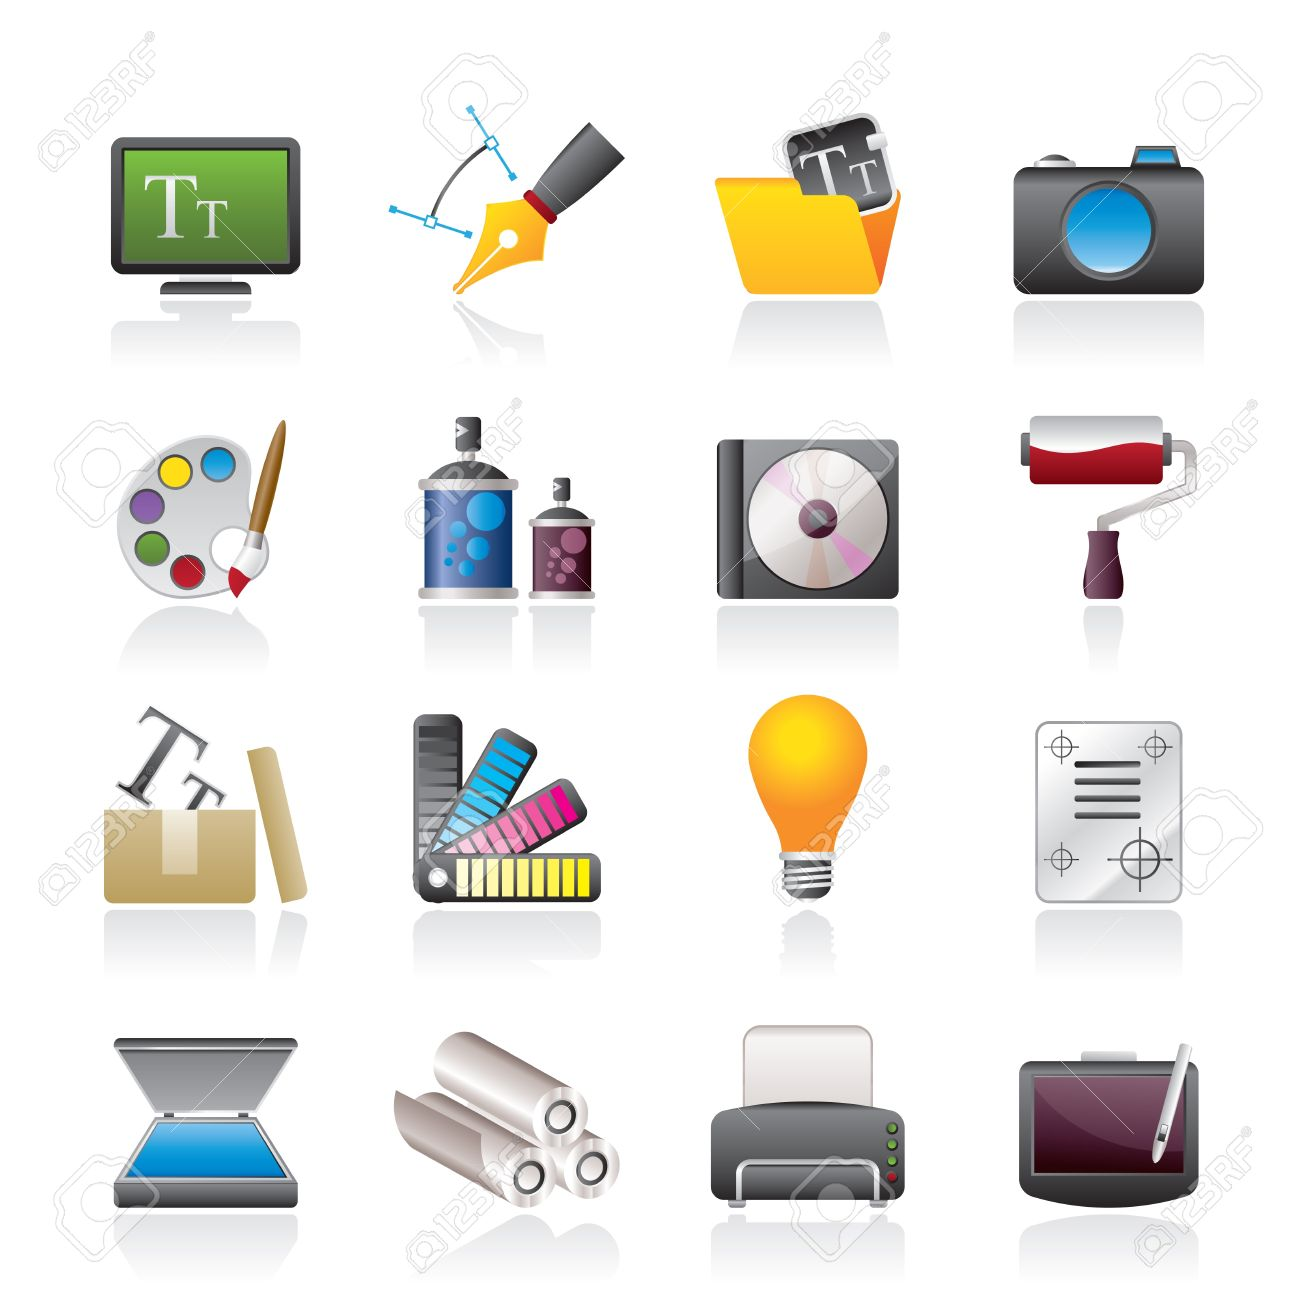 Graphic and website design icons - icon set - 16452245